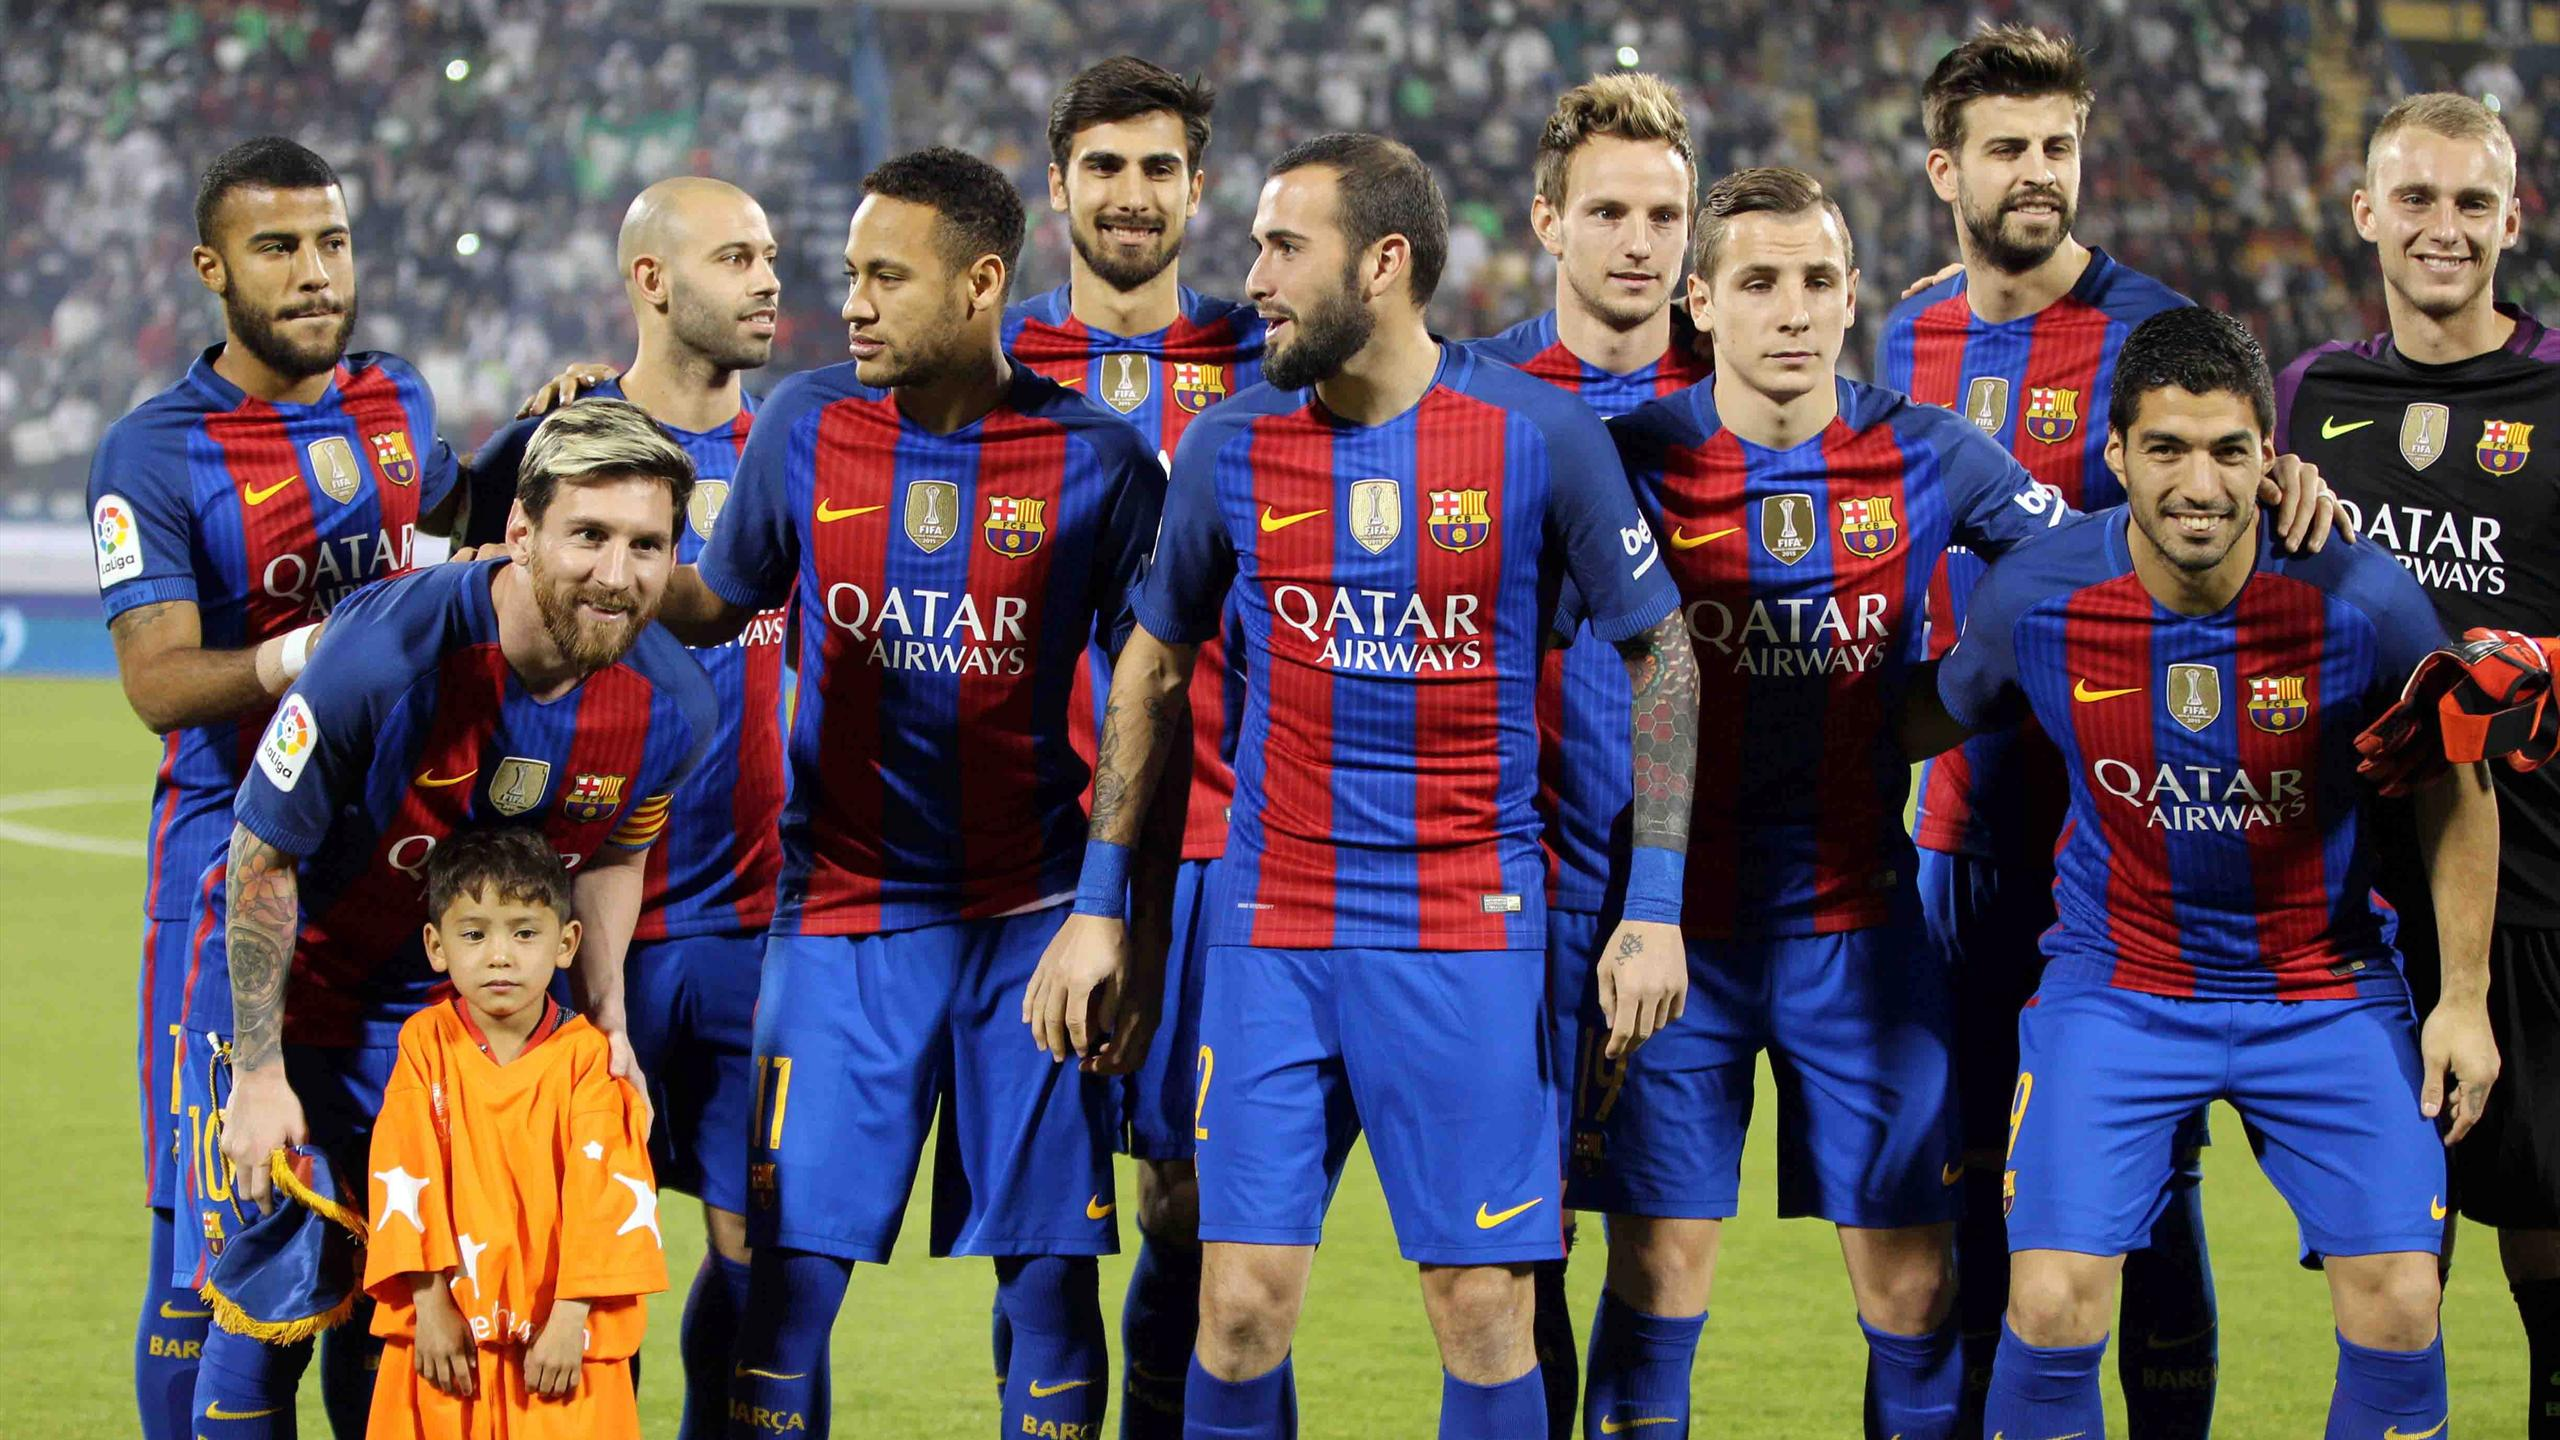 Lionel Messi (L) and Barcelona's team pose for photographs with six-year-old Afghan boy Murtaza Ahmadi before the match